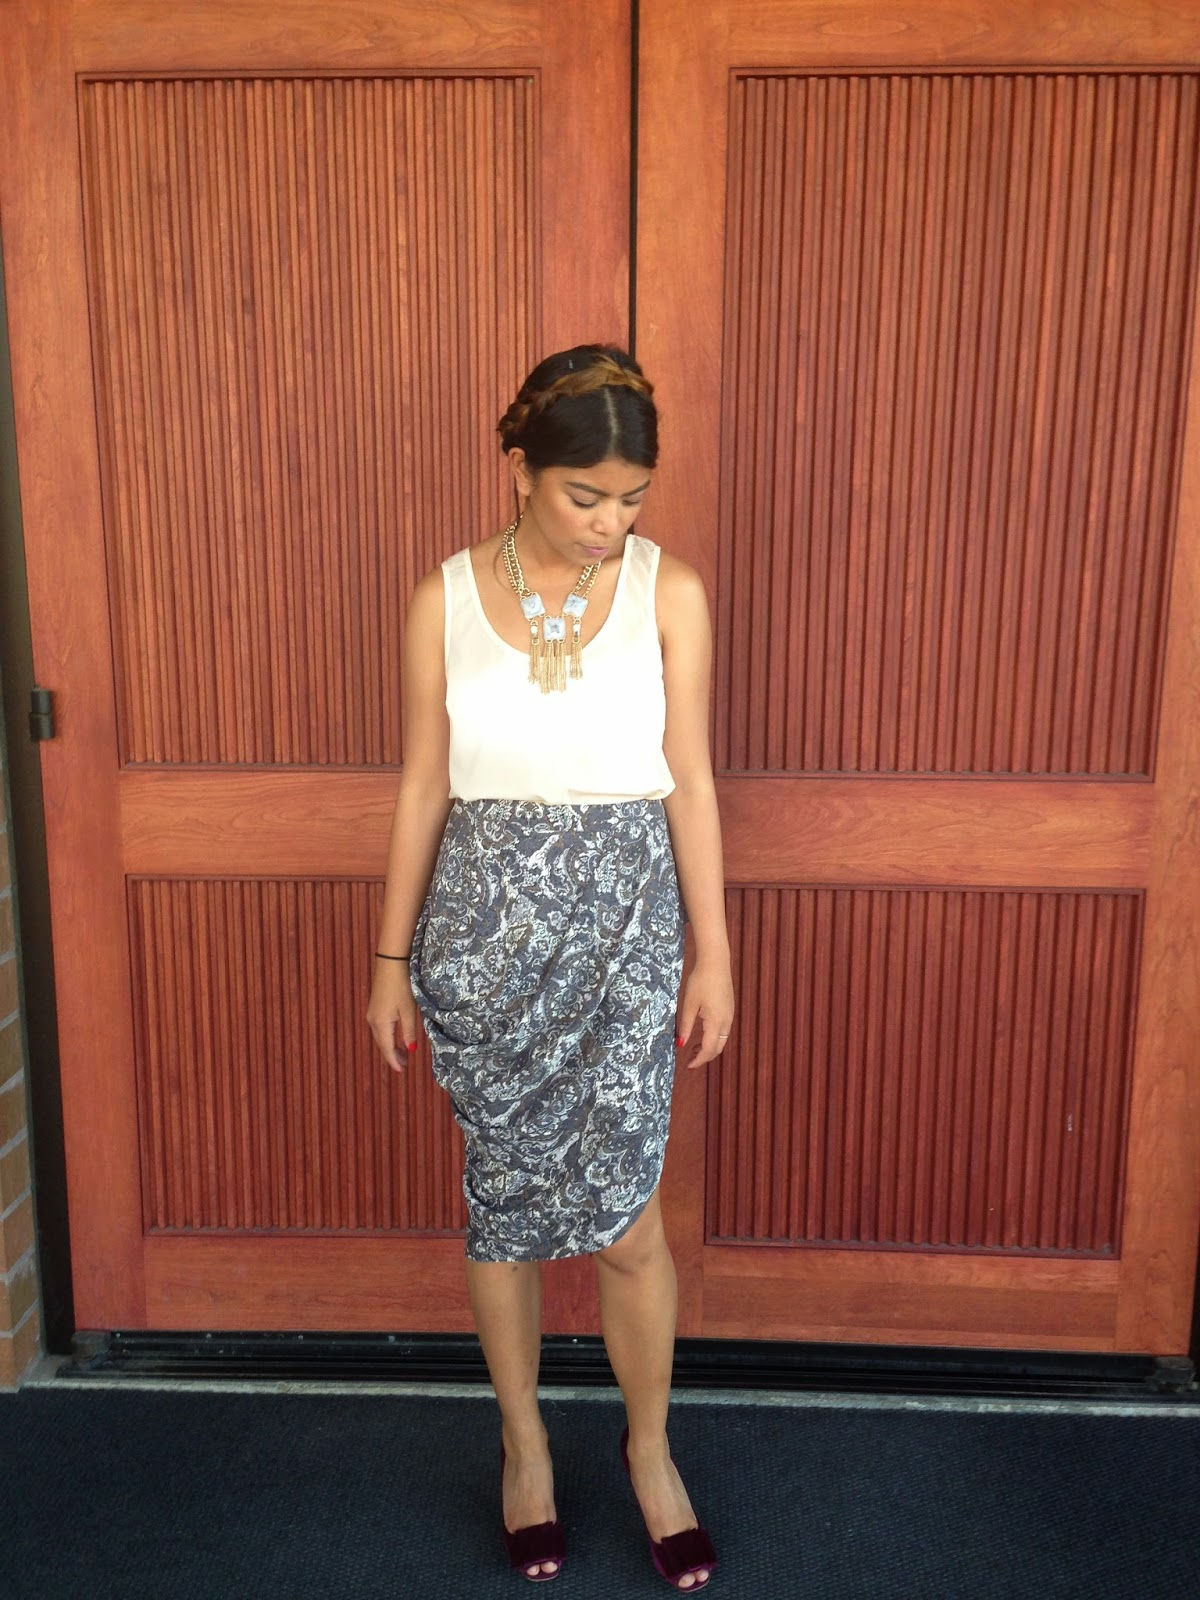 fashion blogger, street style, the P Town Girls, portland blogger, affordable fashion, paisley skirt, milk braid hair, natural, summer 2014